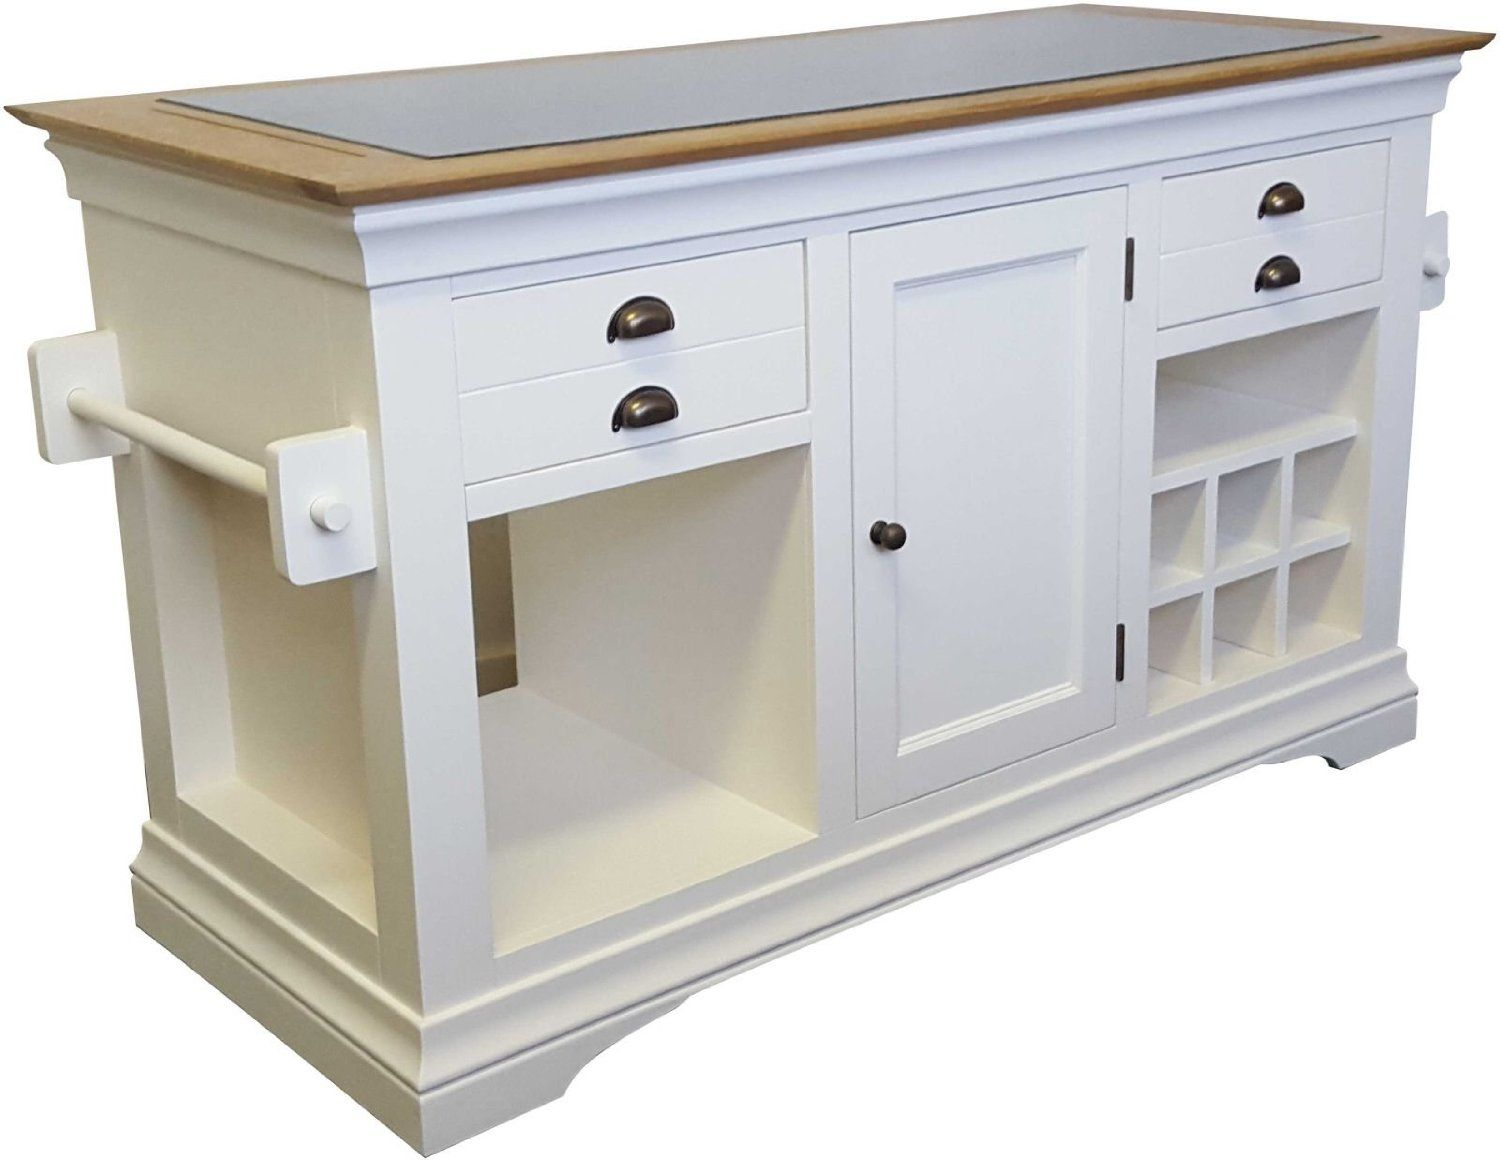 Merveilleux Dijon Cream Painted Furniture Large Granite Top Kitchen Island Unit  Worktop: Amazon.co.uk: Kitchen U0026 Home